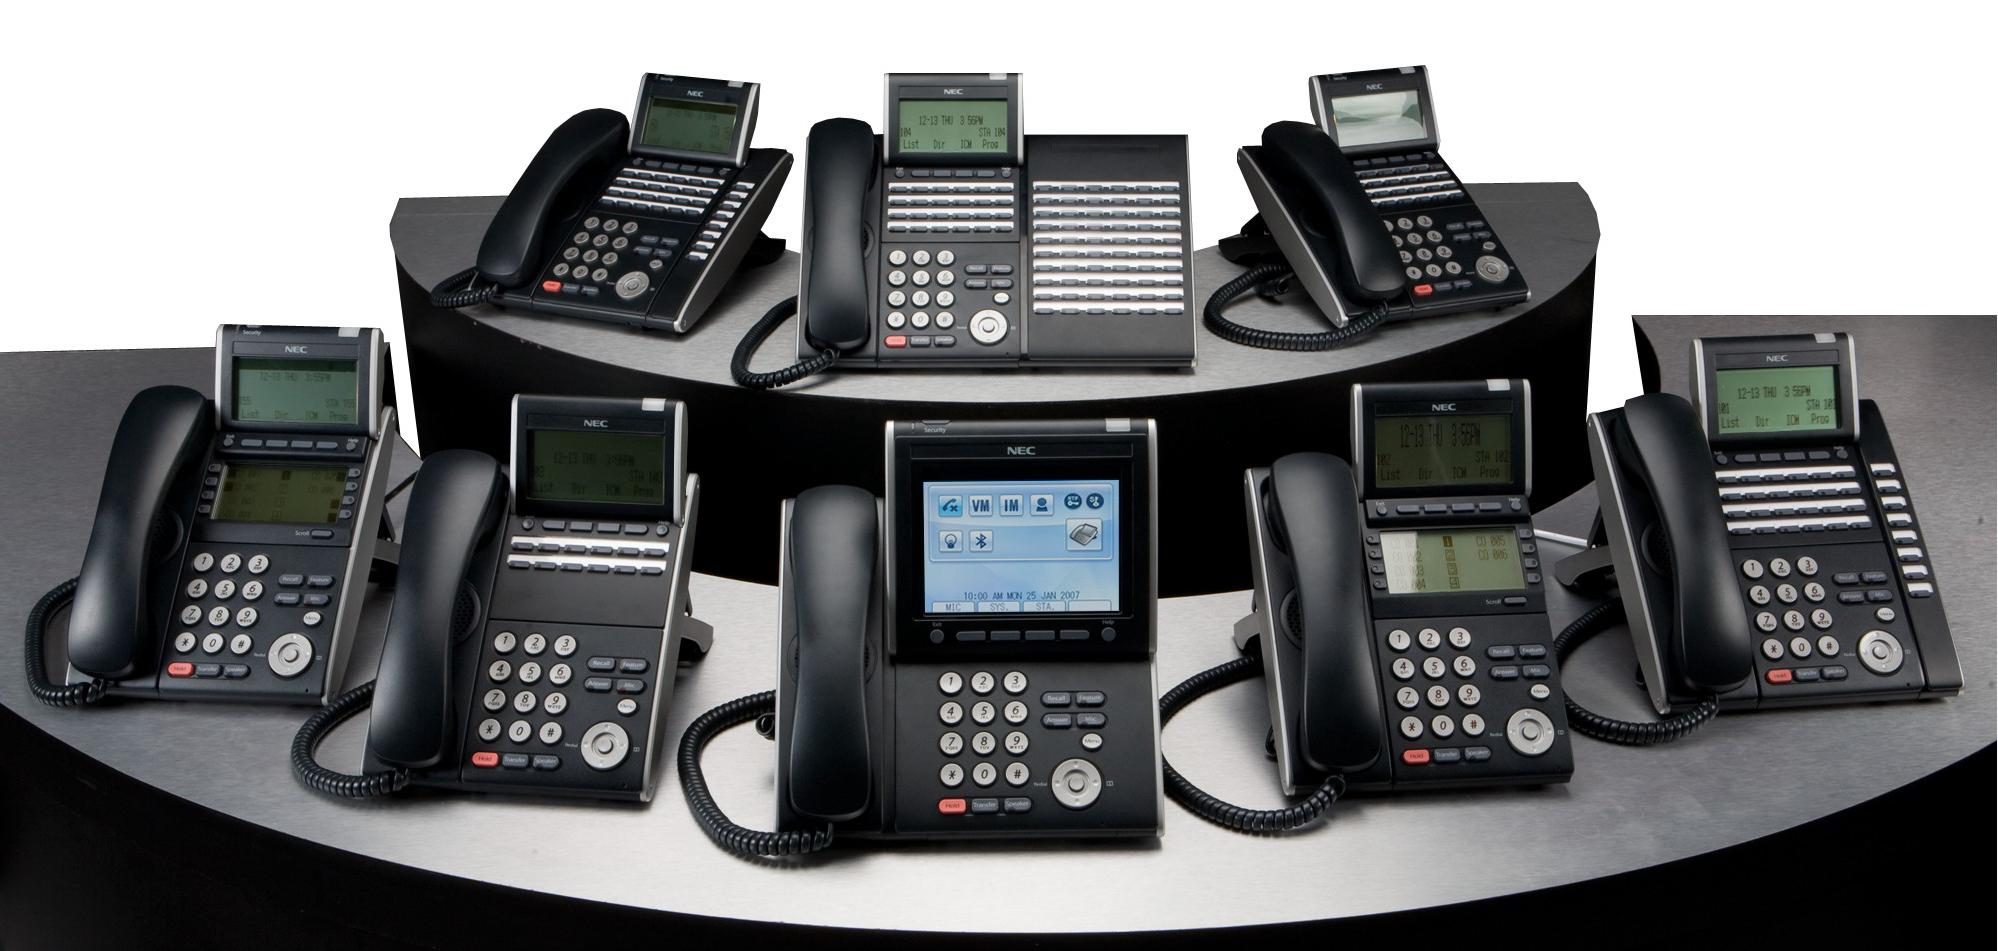 toshiba phone system voicemail instructions